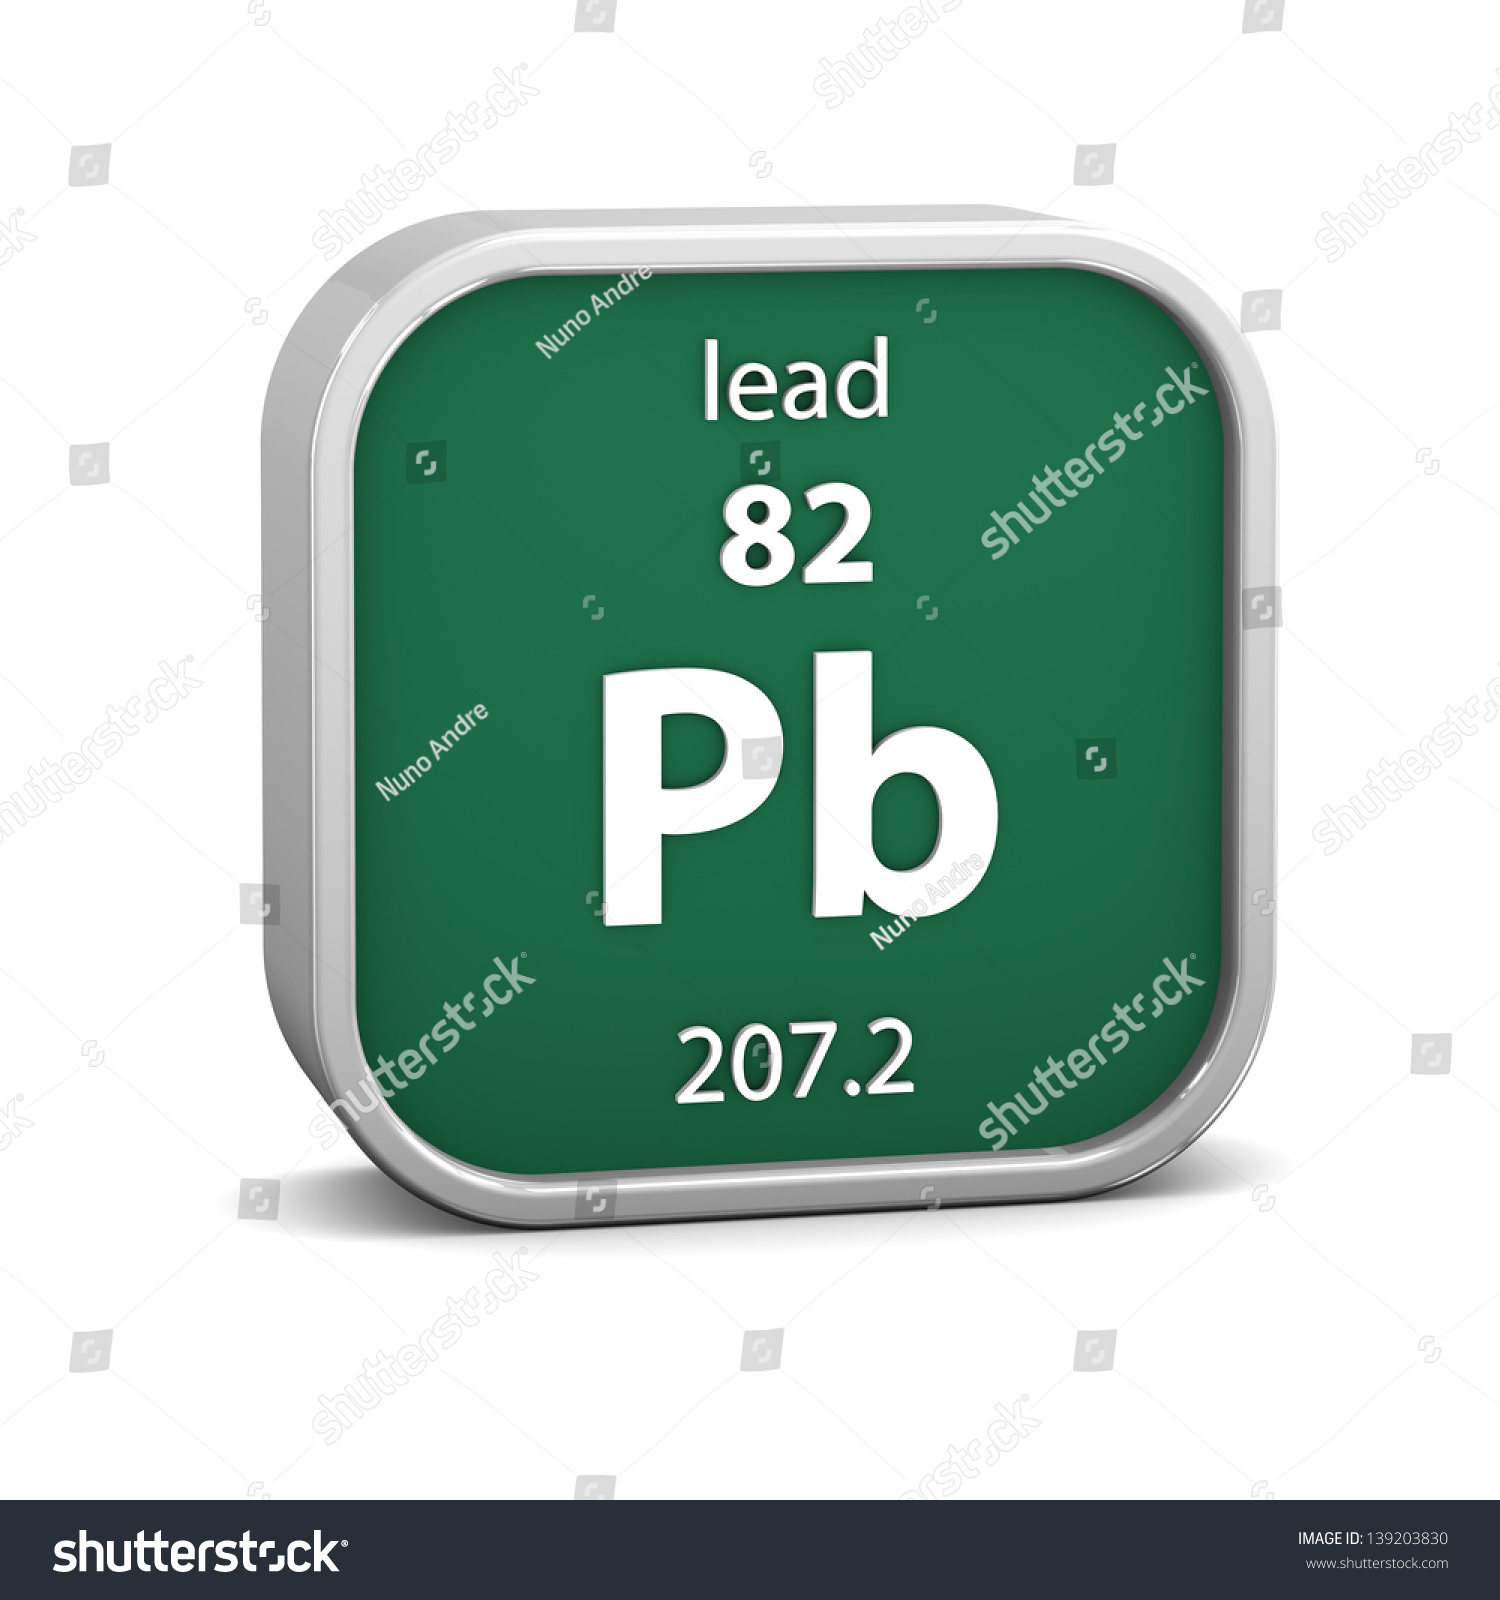 Periodic table symbol for lead images periodic table images lead periodic table symbol choice image periodic table images symbol for lead on periodic table image gamestrikefo Gallery